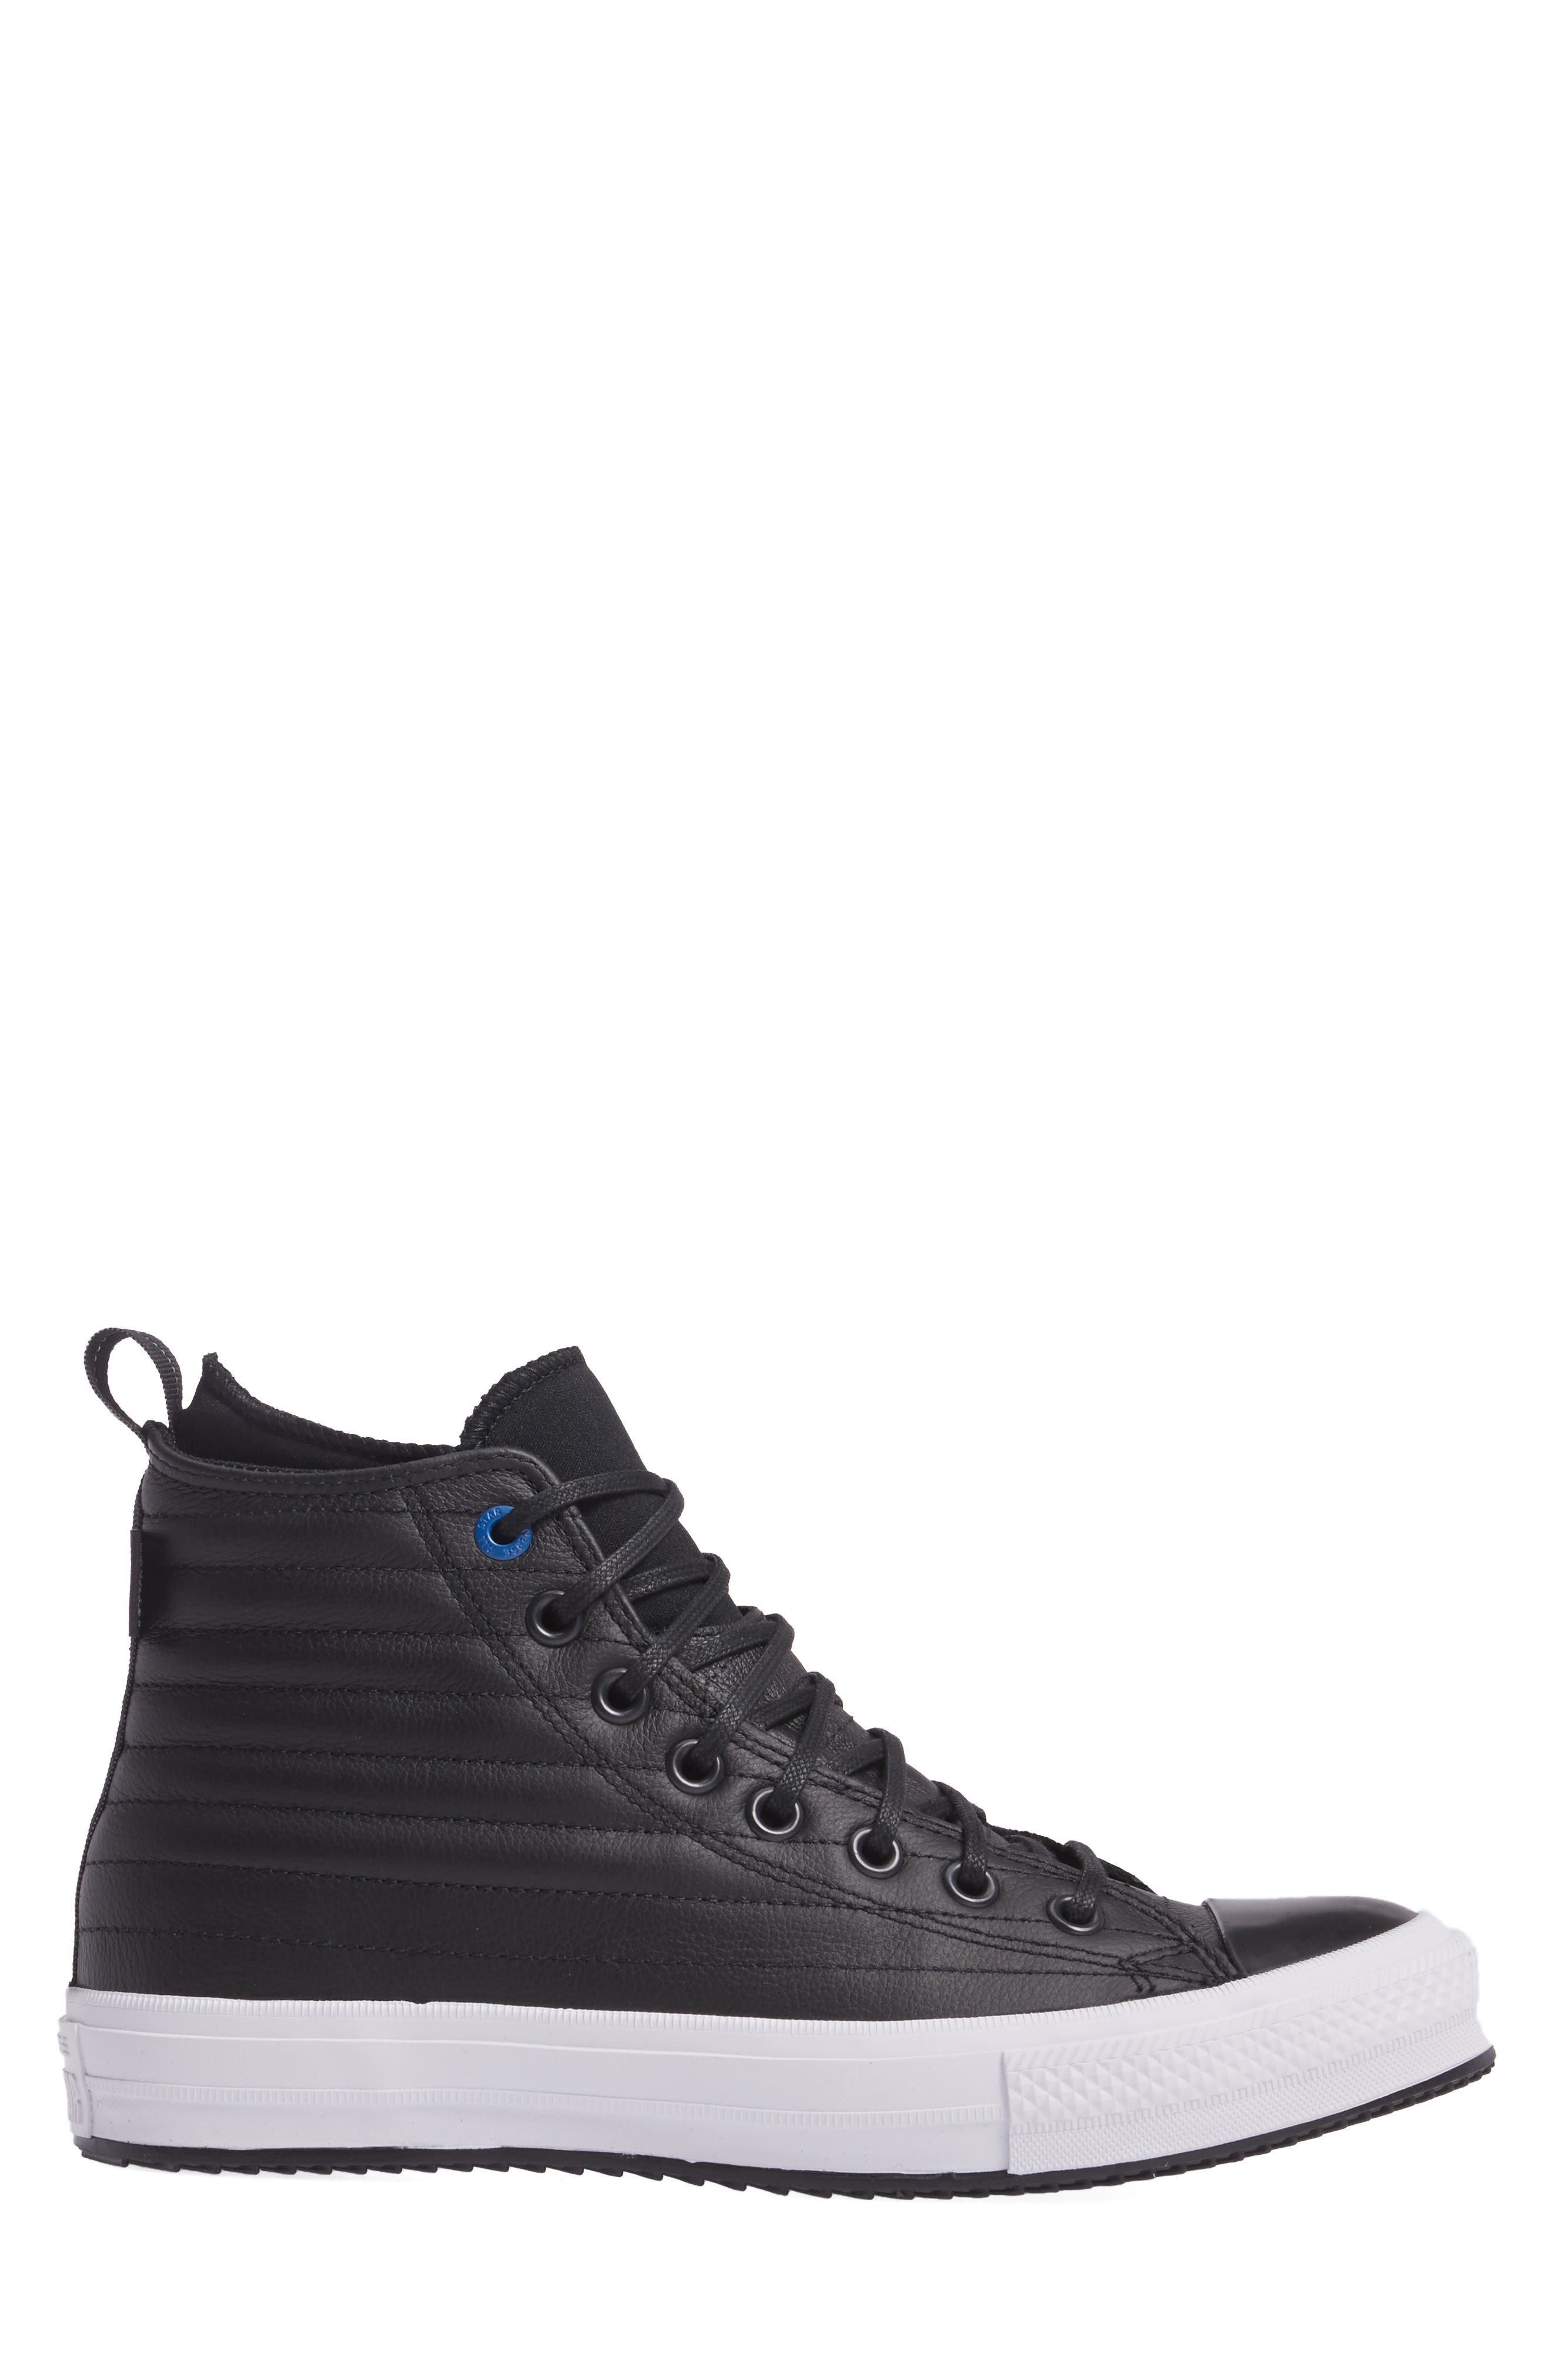 Chuck Taylor<sup>®</sup> All Star<sup>®</sup> Waterproof Quilted Sneaker,                             Alternate thumbnail 3, color,                             001